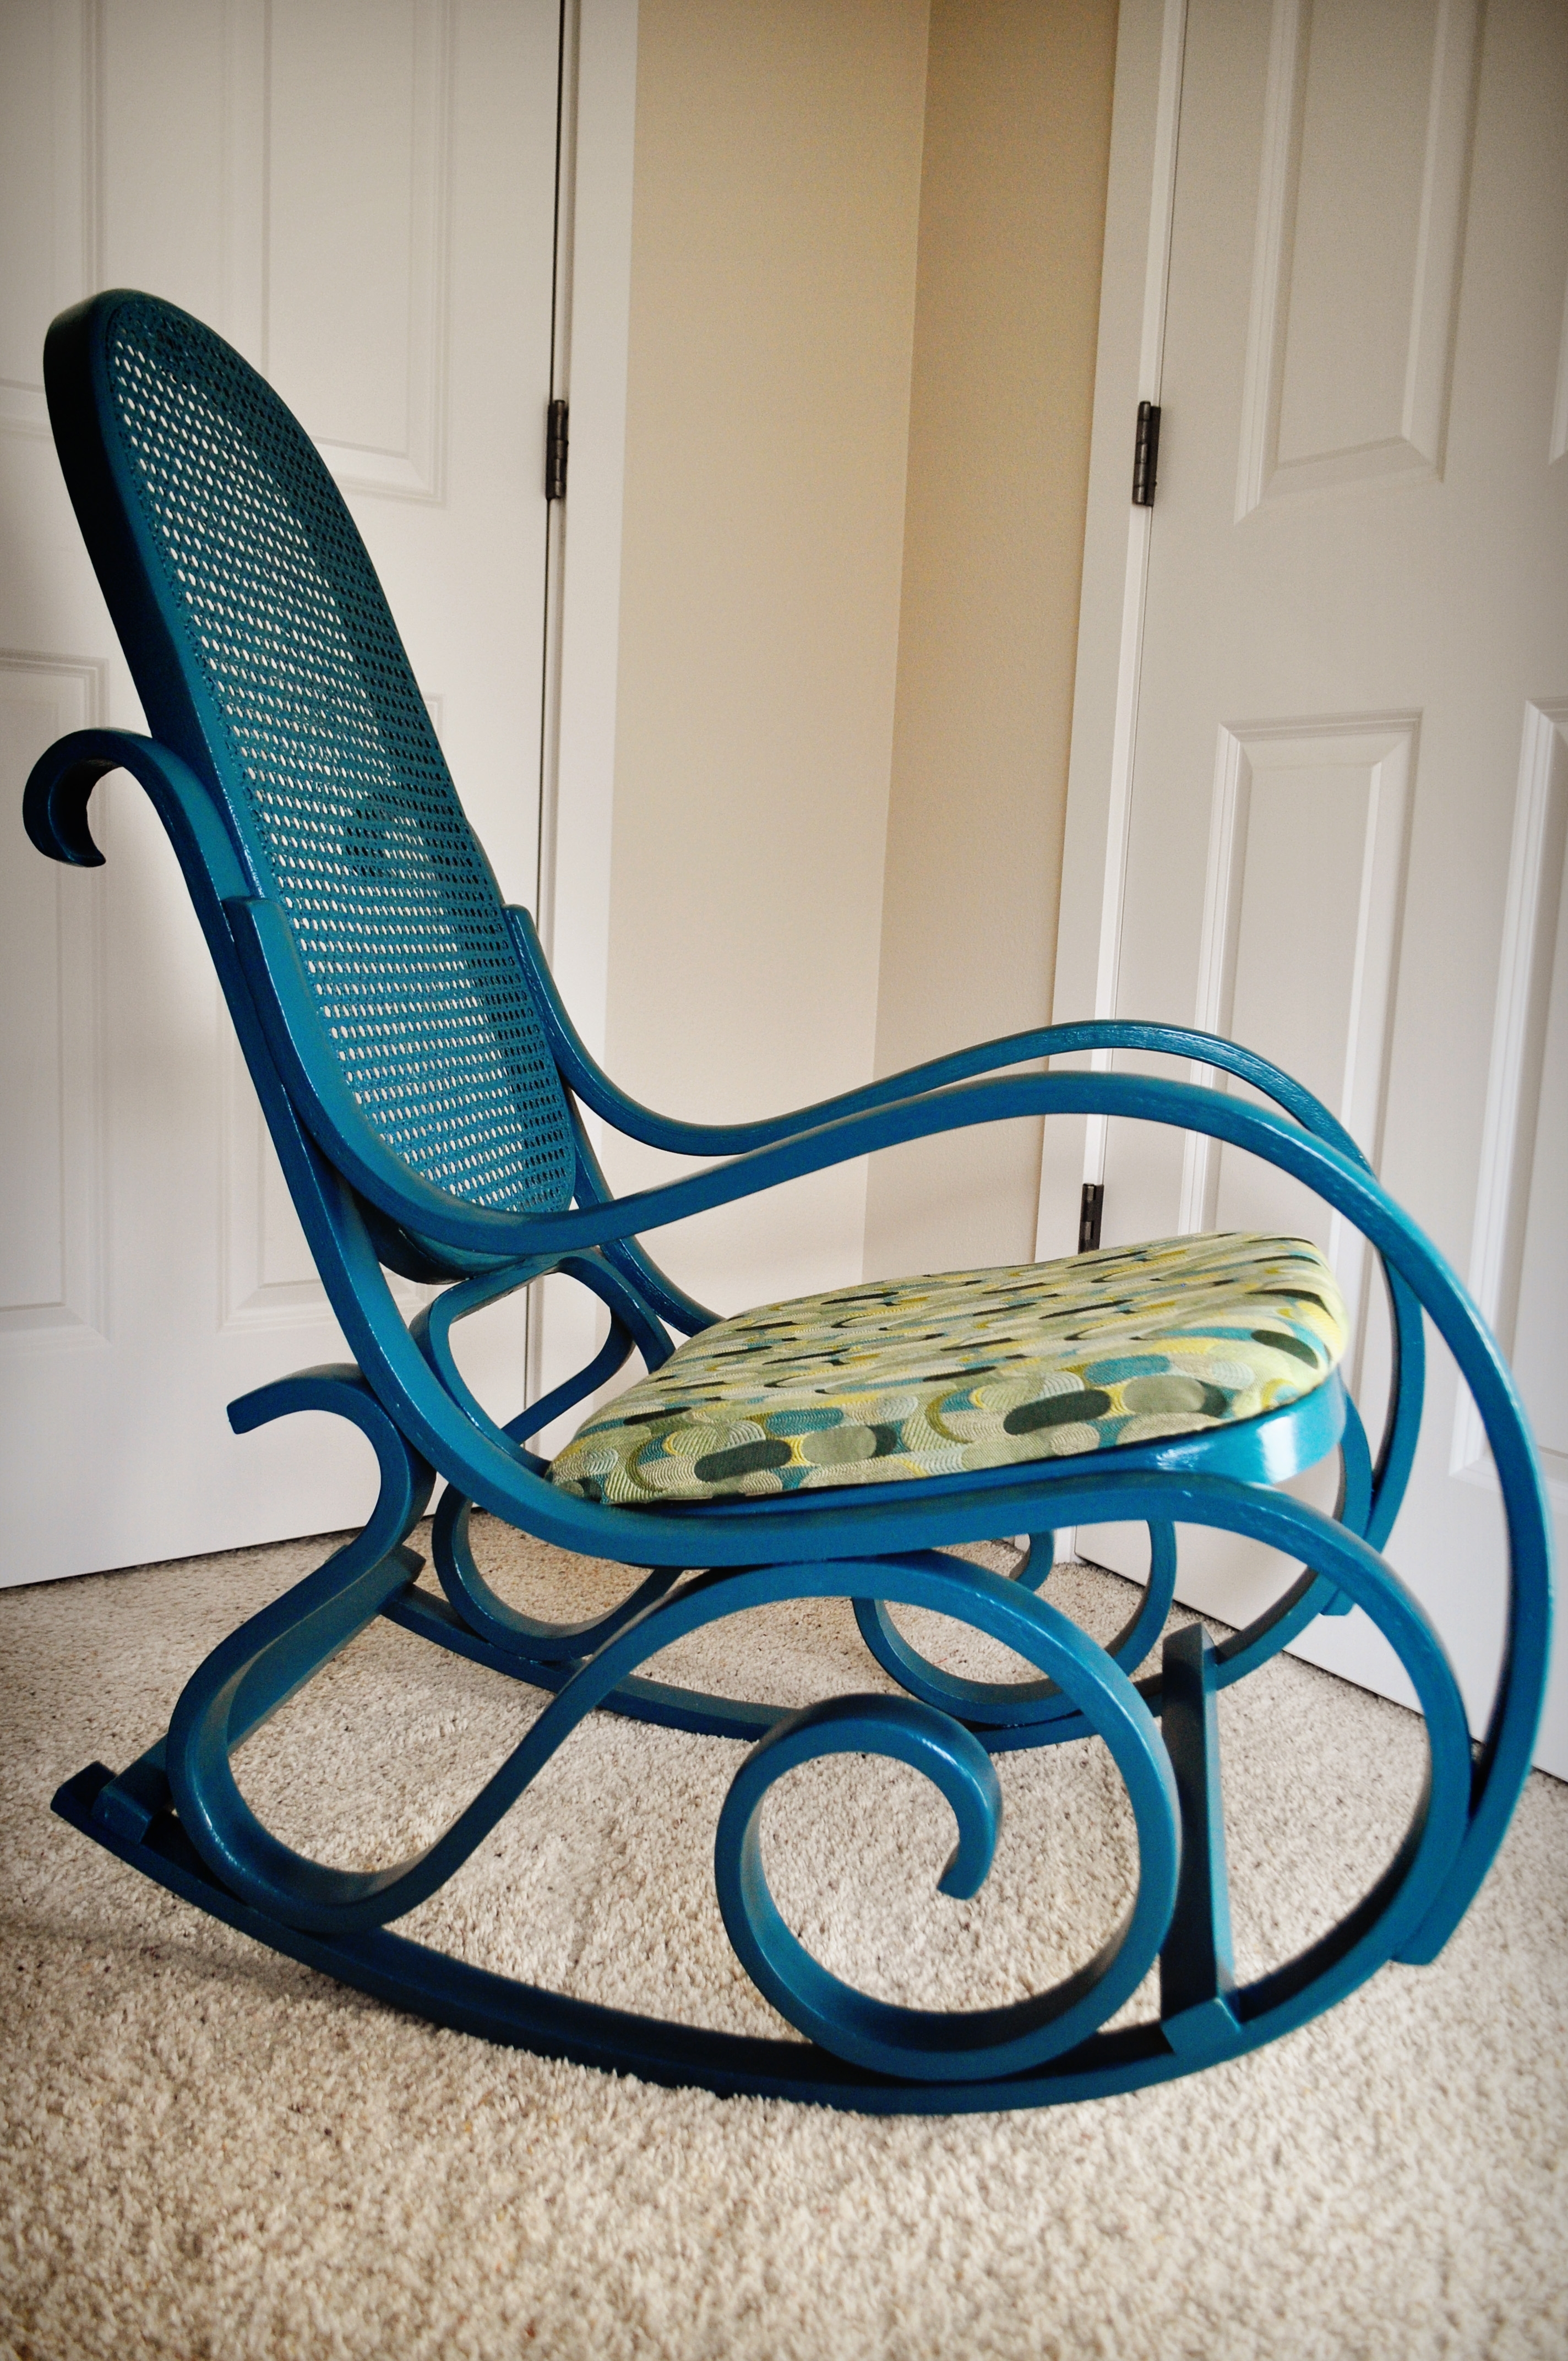 Vintage Wicker Rocking Chairs Inside Famous Furniture: Antique Wicker Rocking Chair Design (View 11 of 15)